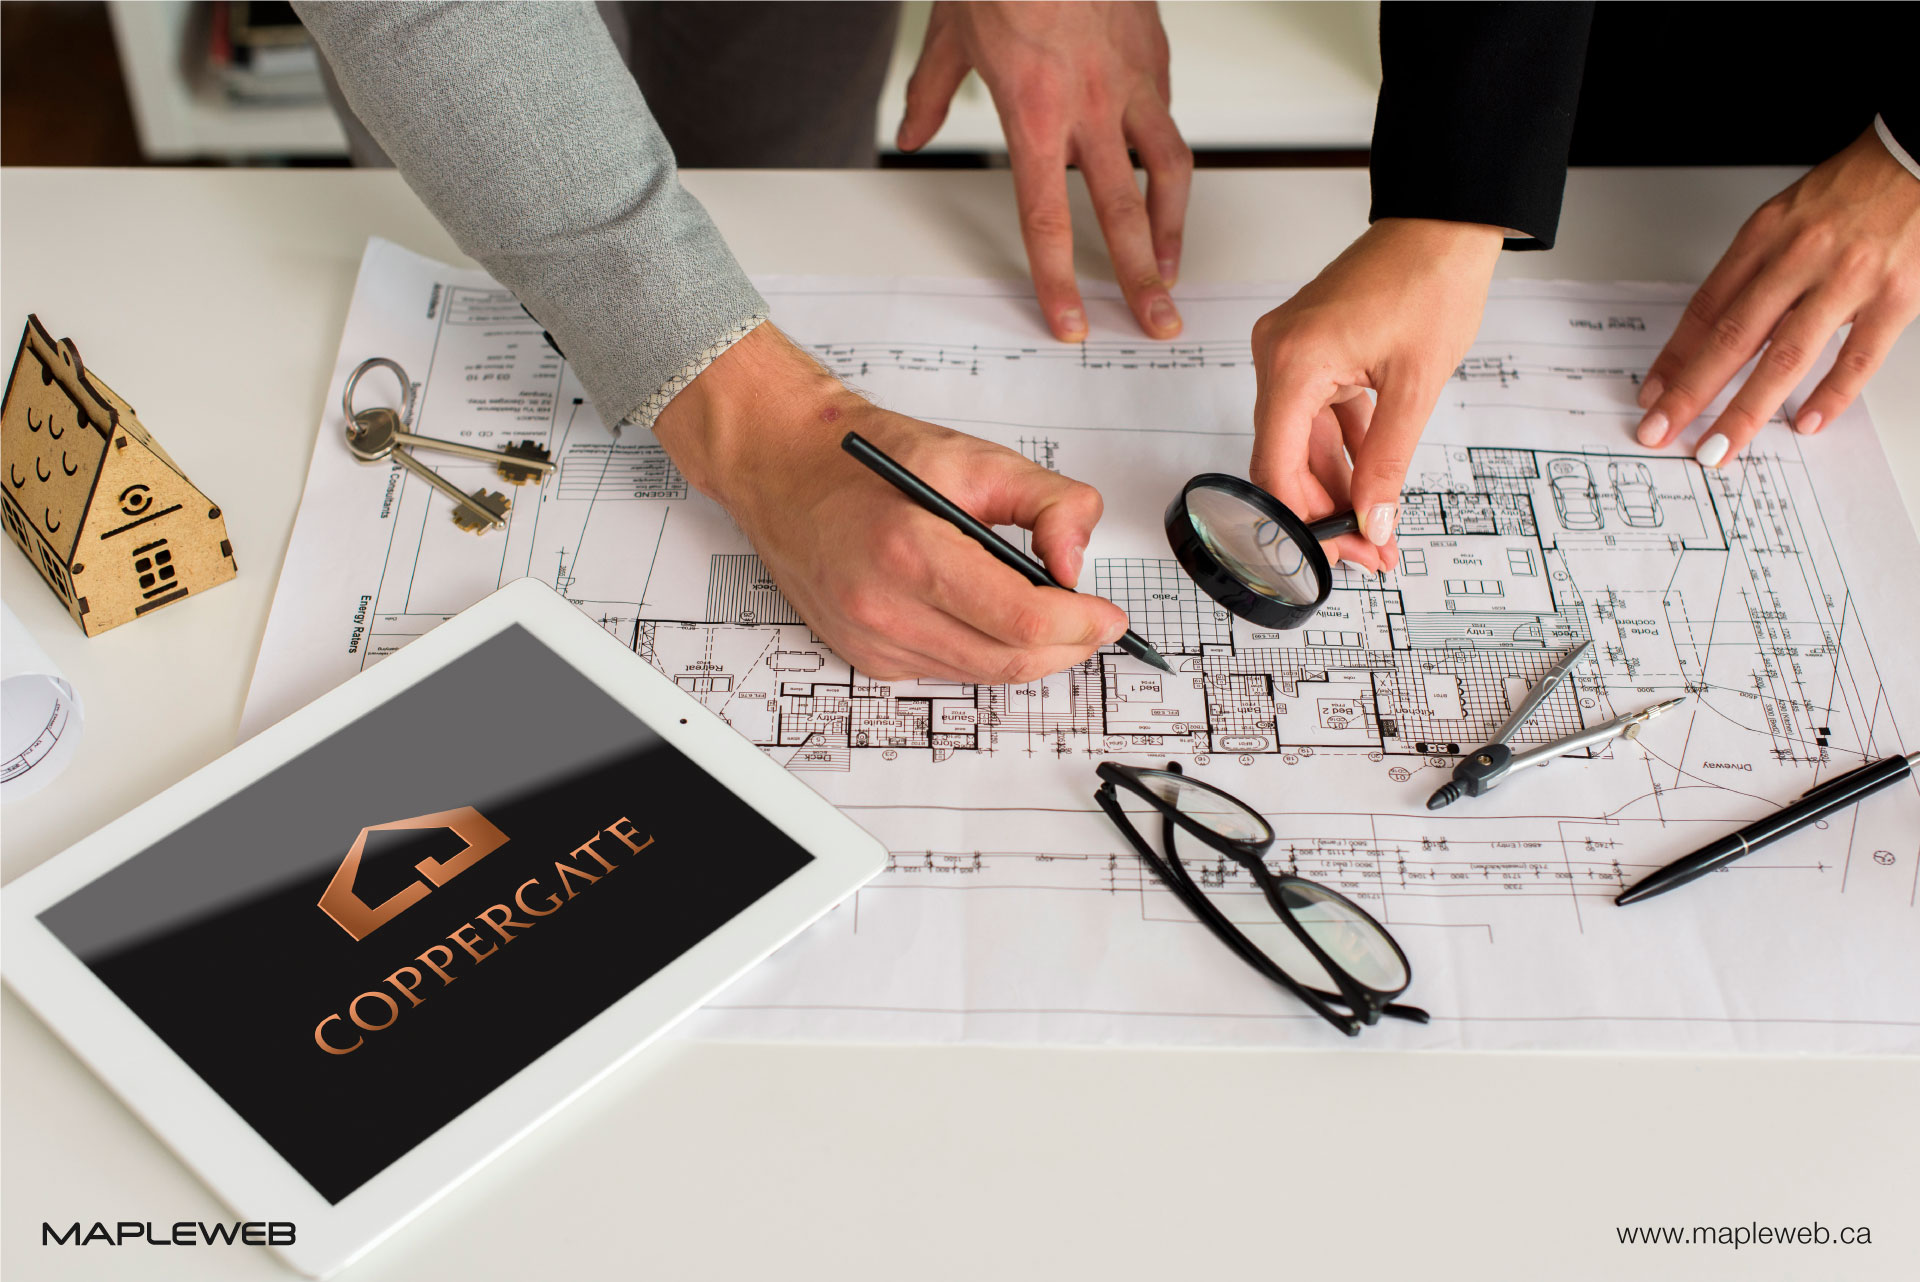 coppergate-brand-logo-design-by-mapleweb-vancouver-canada-tablet-mock